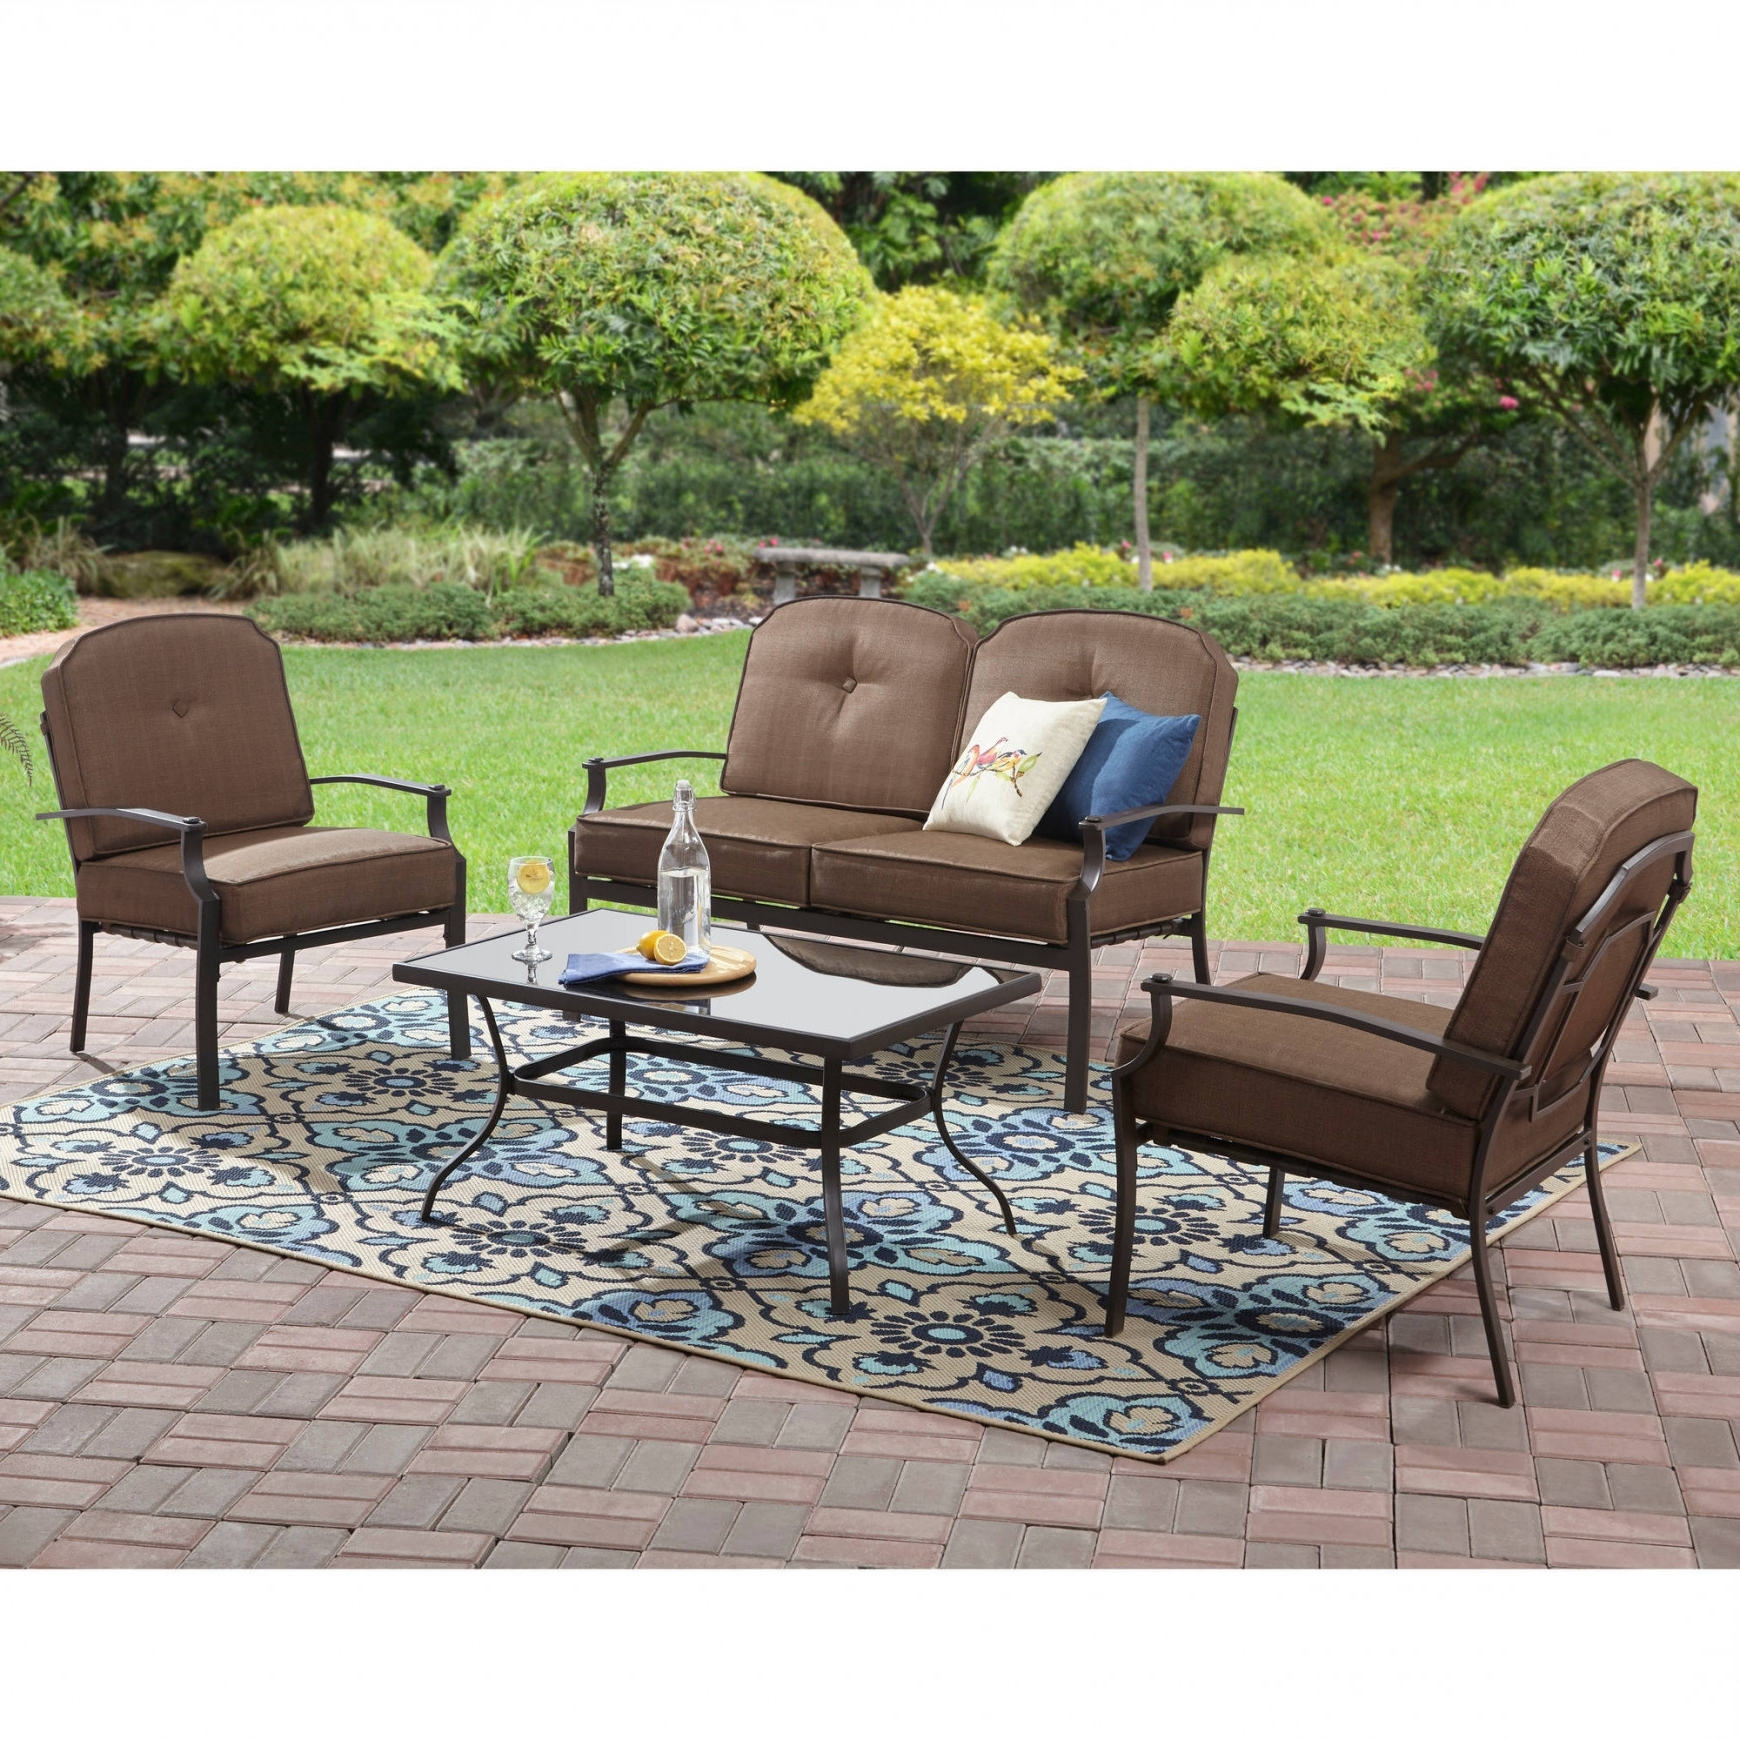 Favorite Patio Conversation Sets With Umbrella Within Patio Conversation Sets With Umbrella (View 3 of 20)